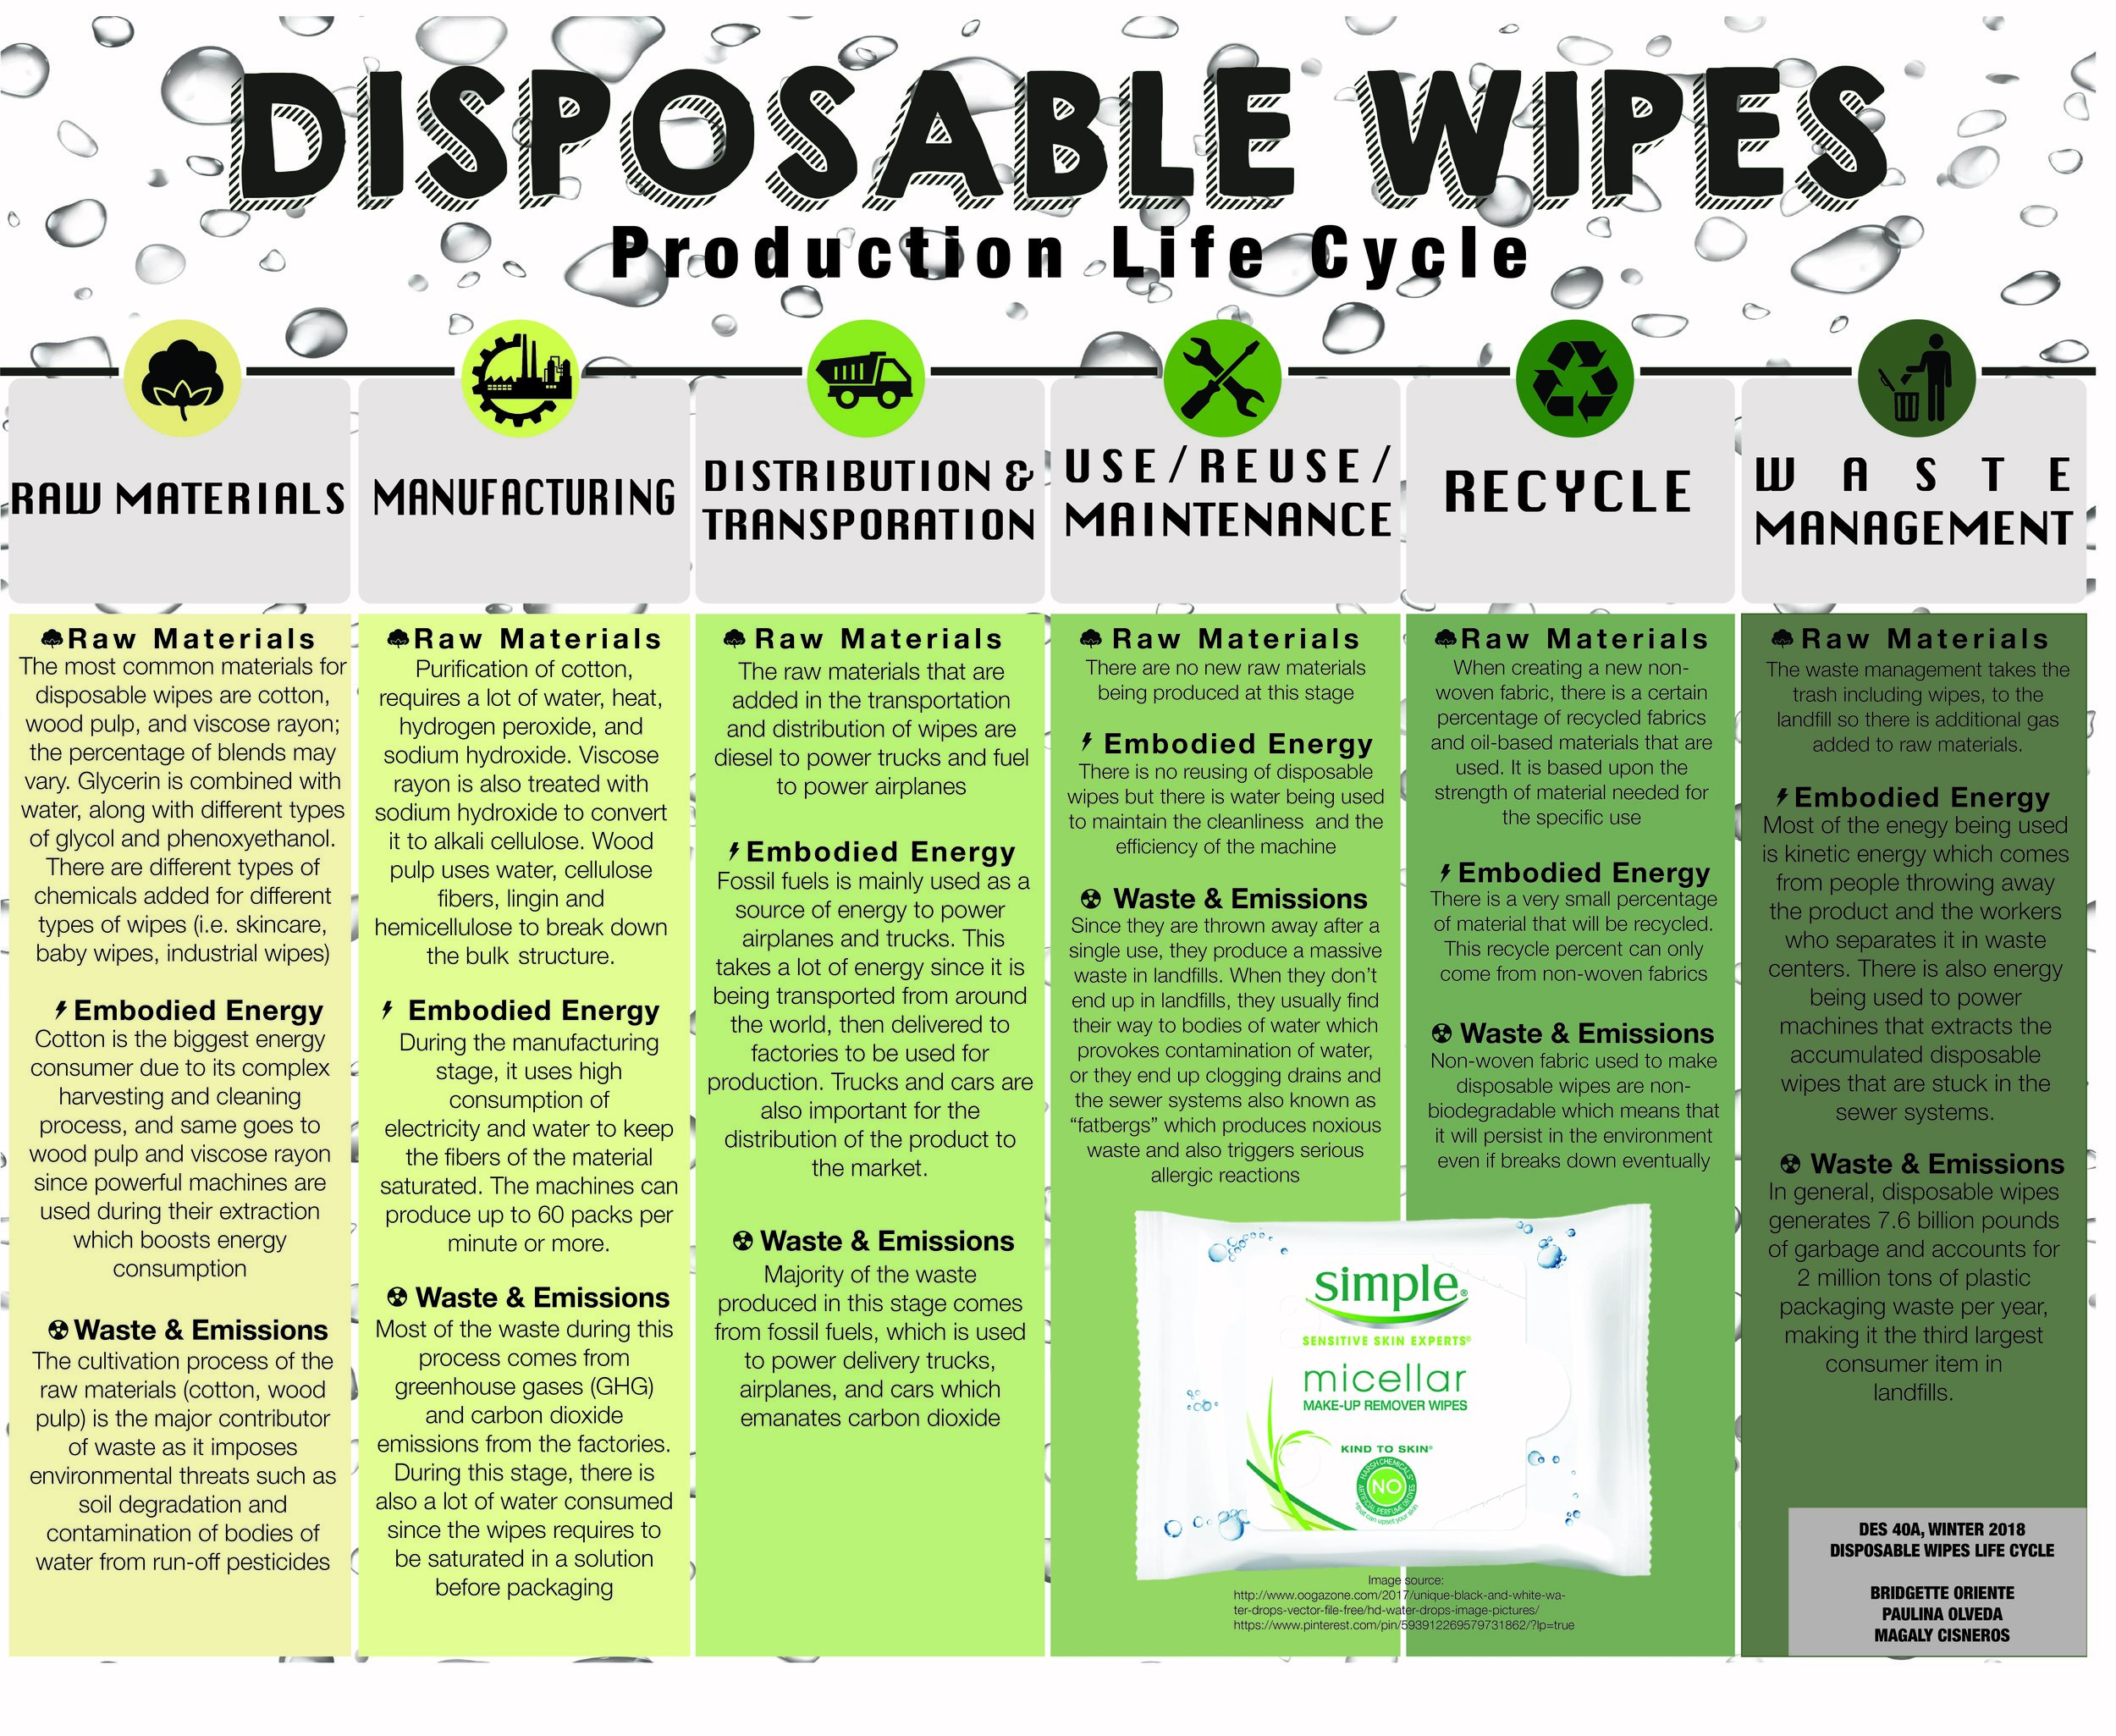 Disposable Wipes Life Cycle